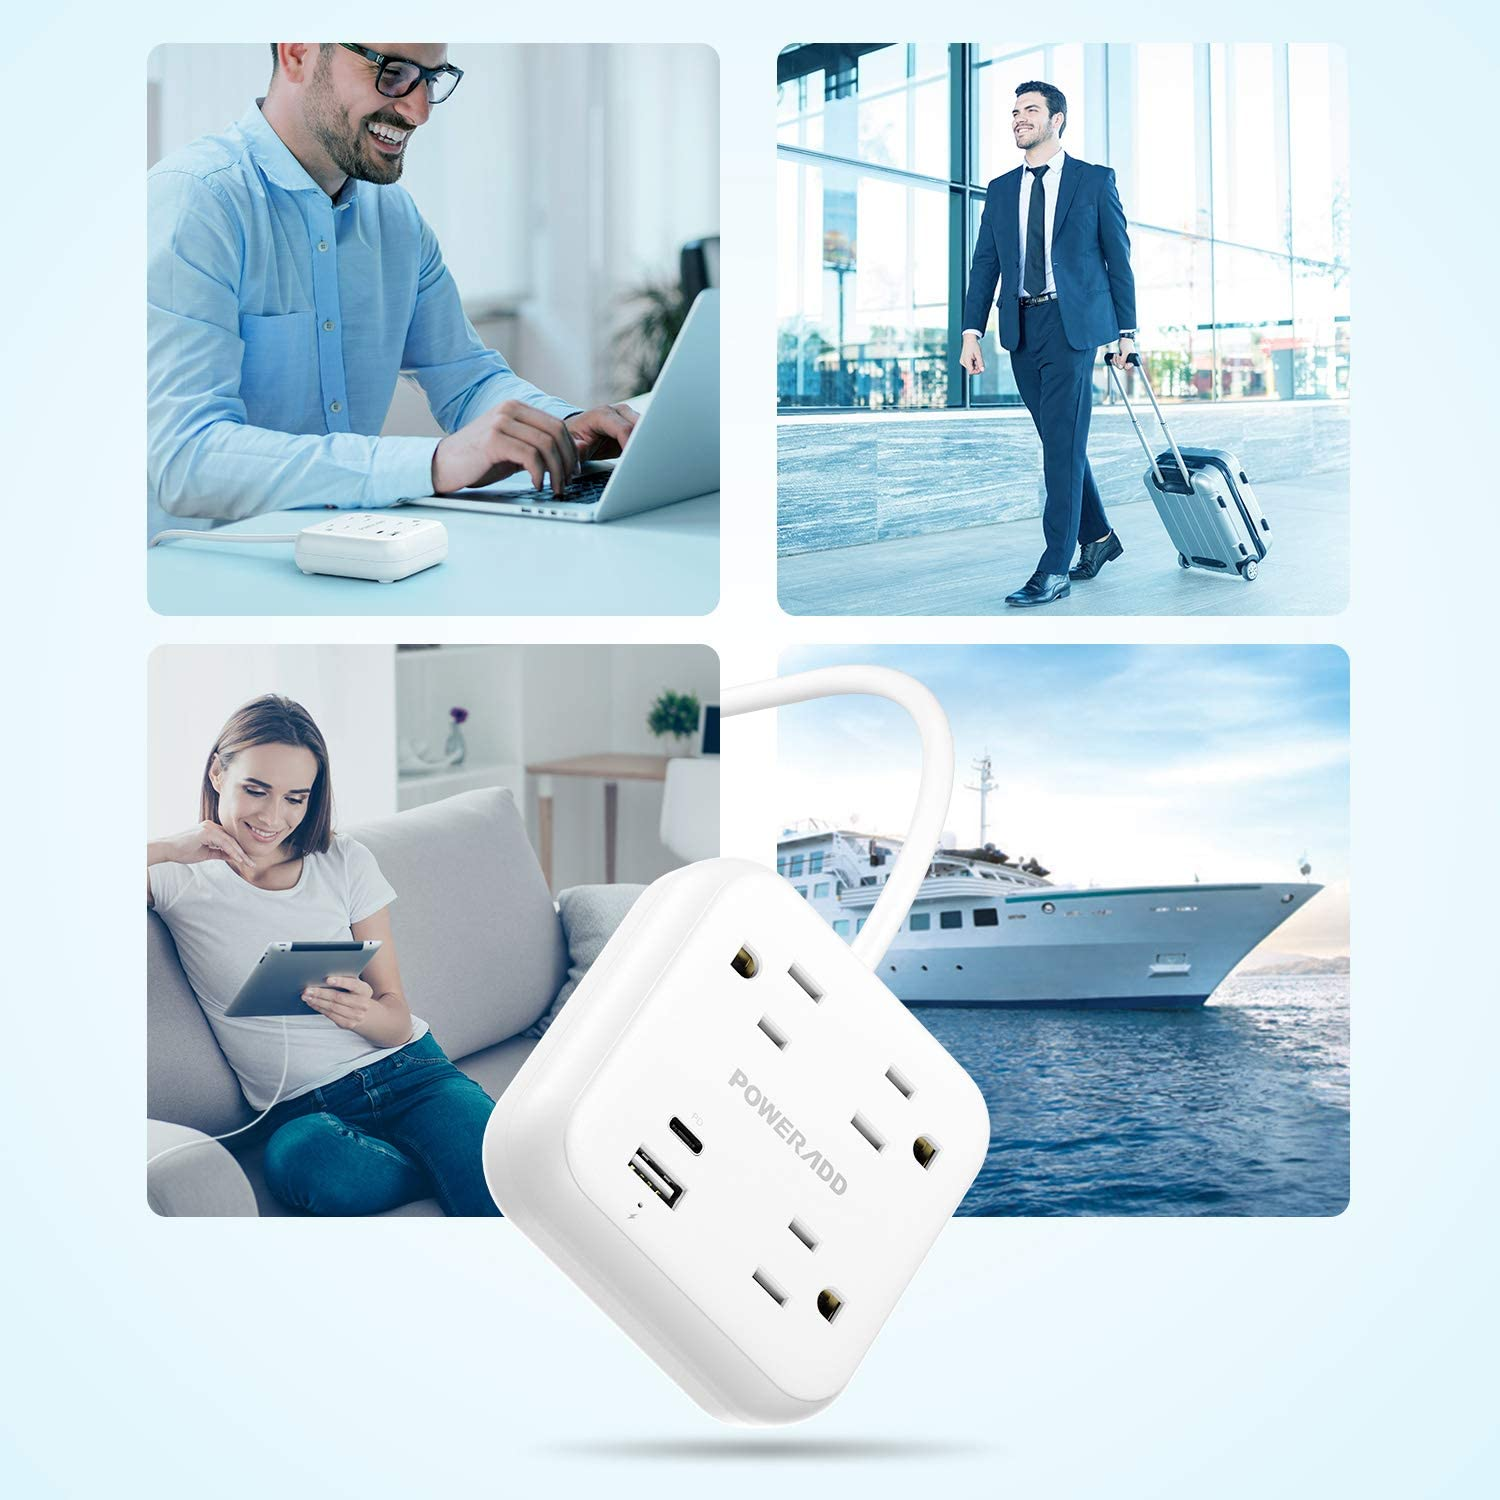 POWERADD Power Strip with USB C Power Delivery 18W, Travel Power Strip with 3 Outlets, 18W USB C & QC 3.0 USB A Port, 5ft Cord, Flat Plug for Cruise Ship, Hotel, Dorm Roo - $9.99